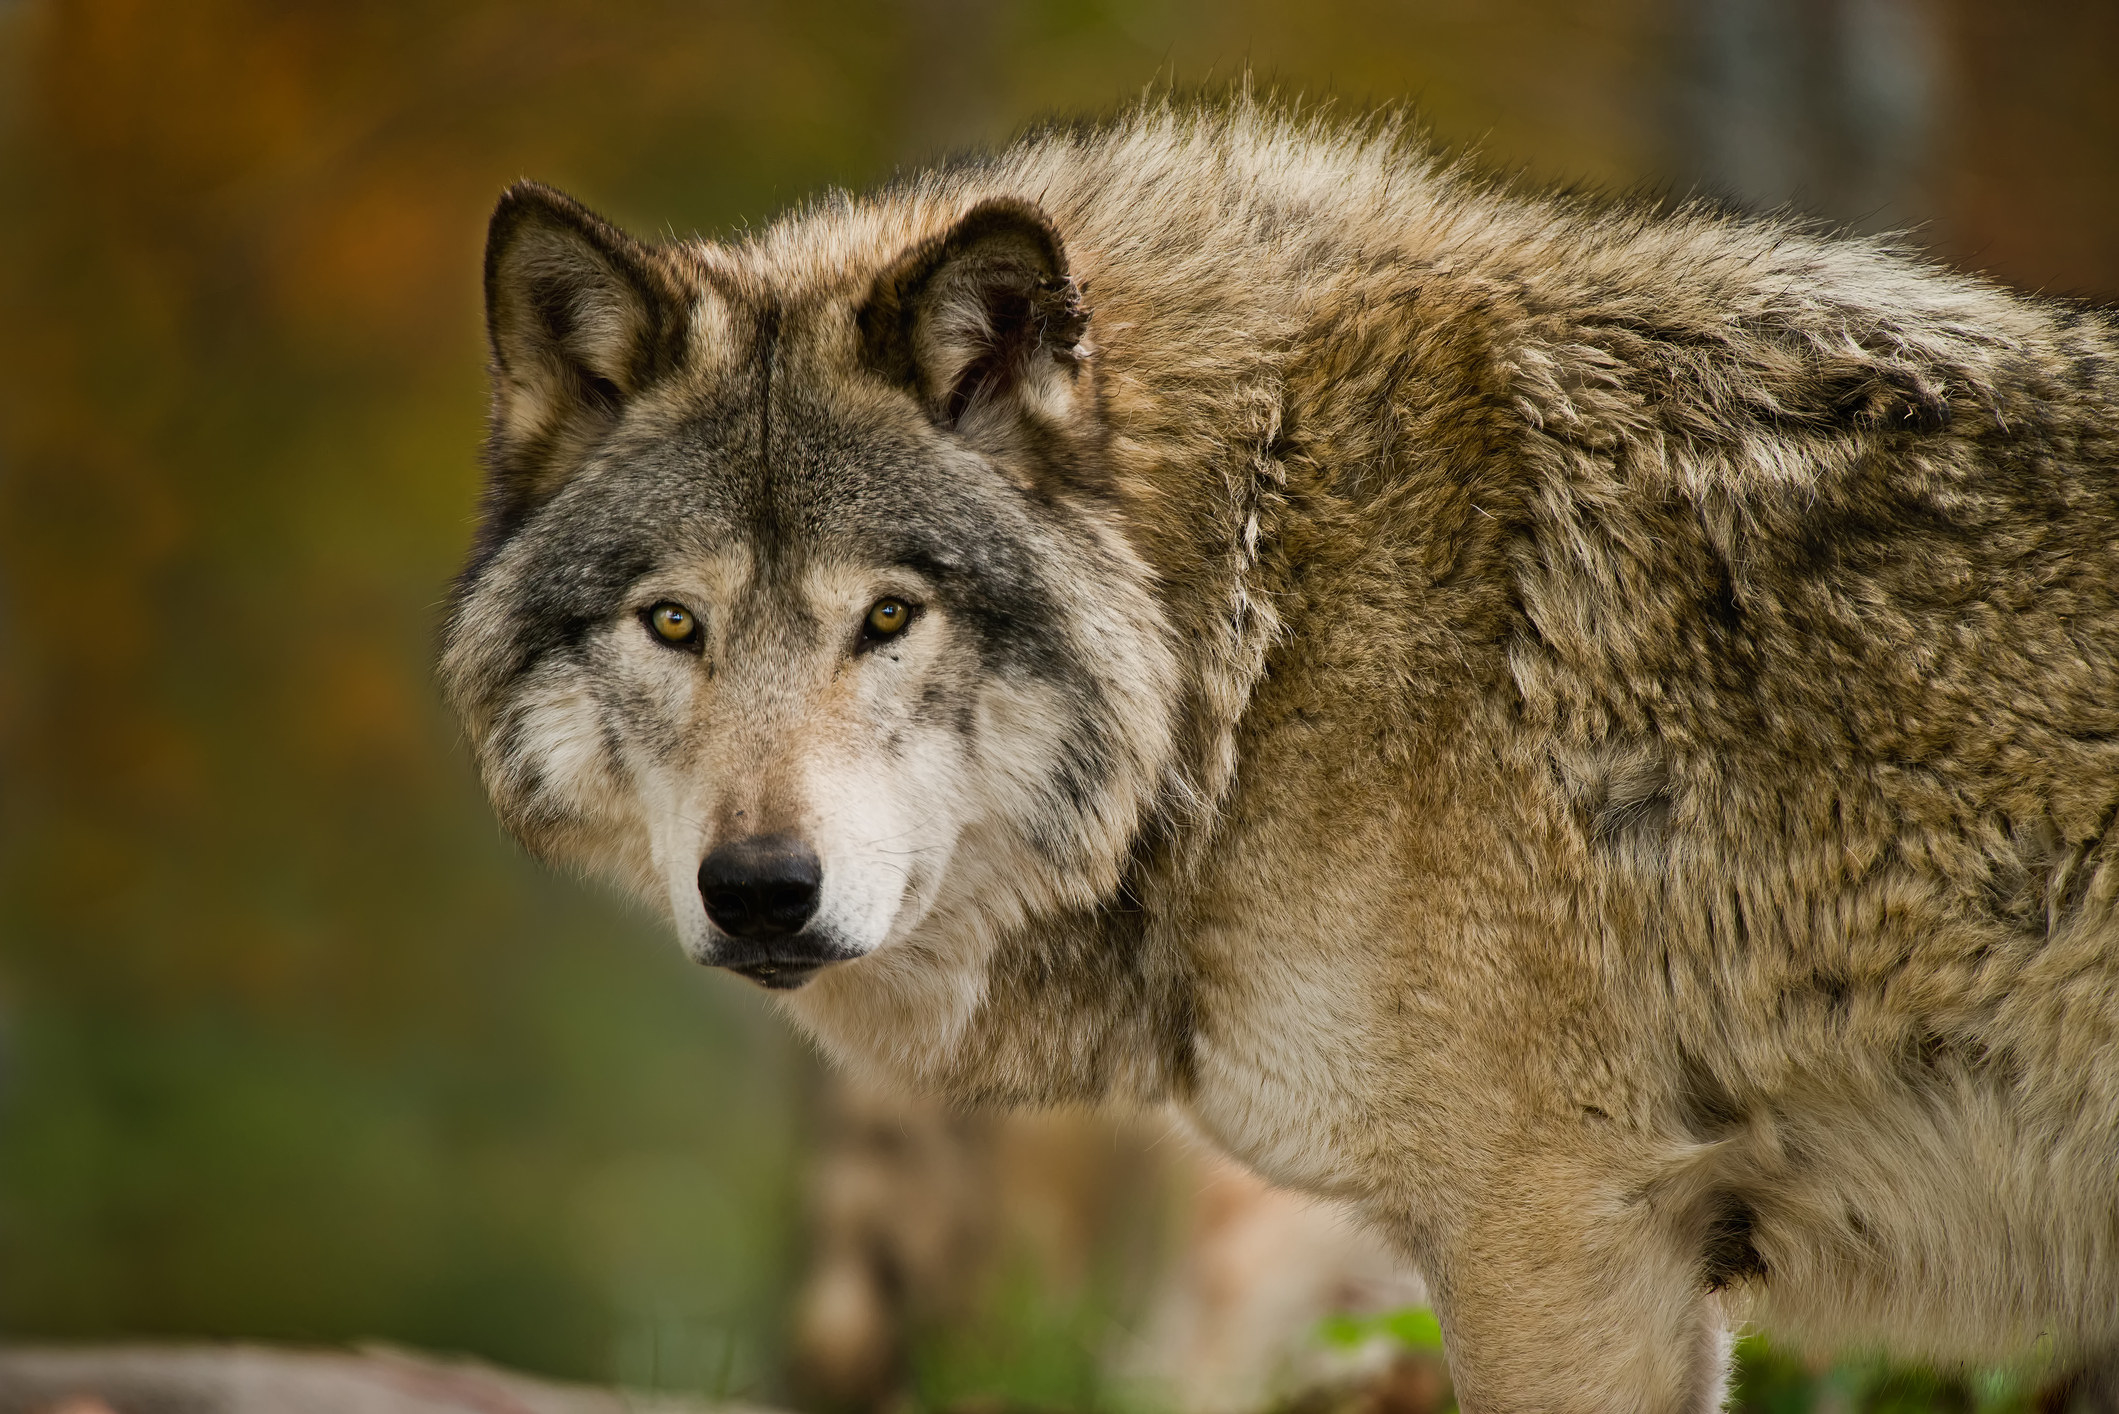 wolf looking straight ahead at camera